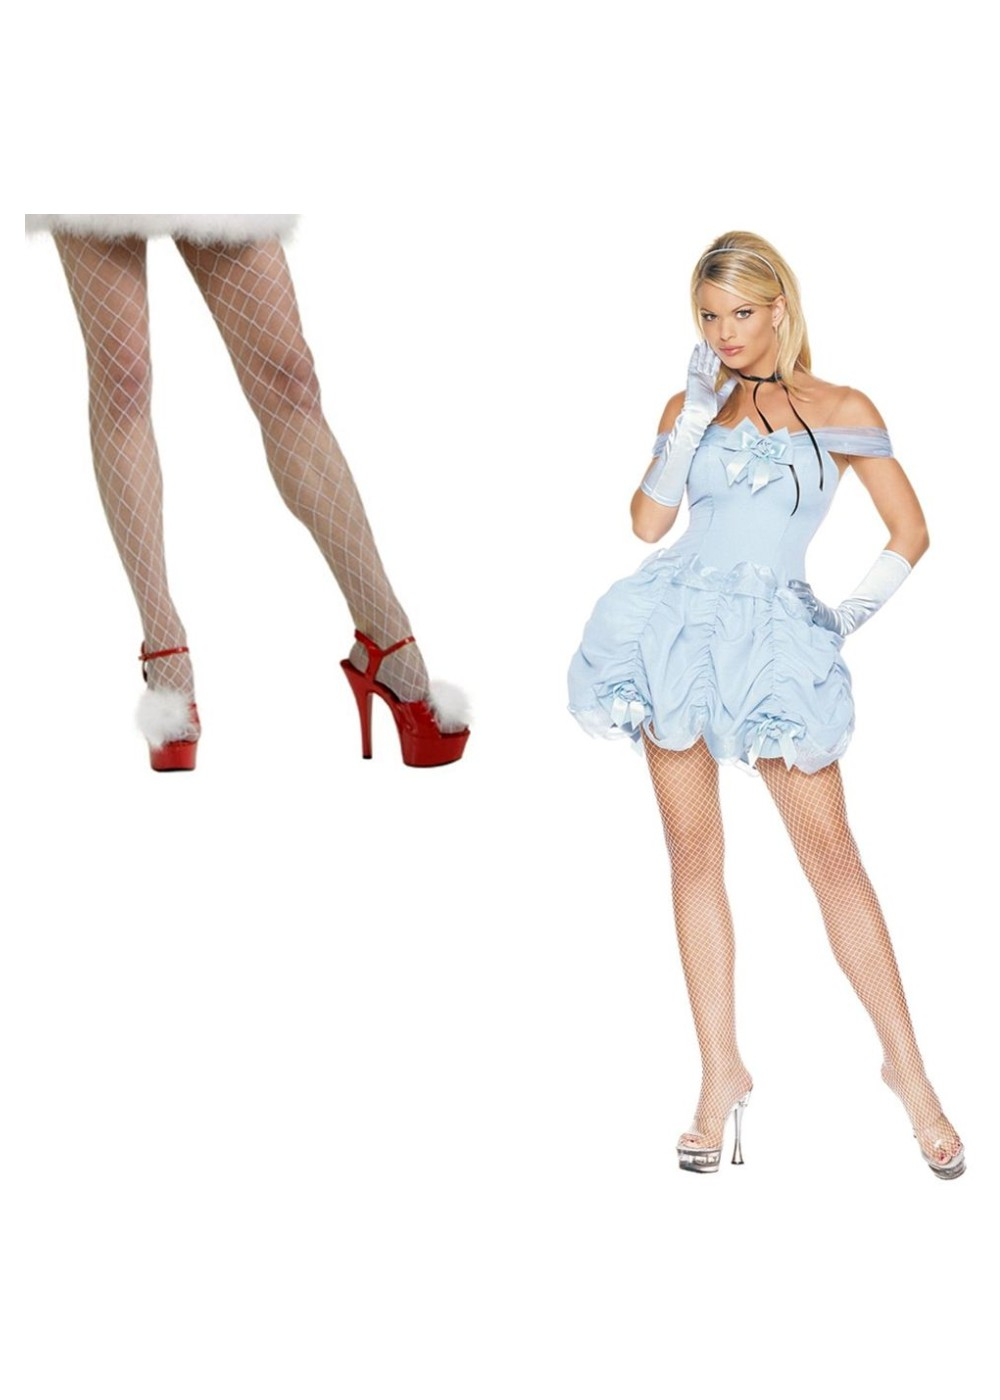 Southern Belle Women Costume and Fishnet Stockings Set  Sexy Costumes